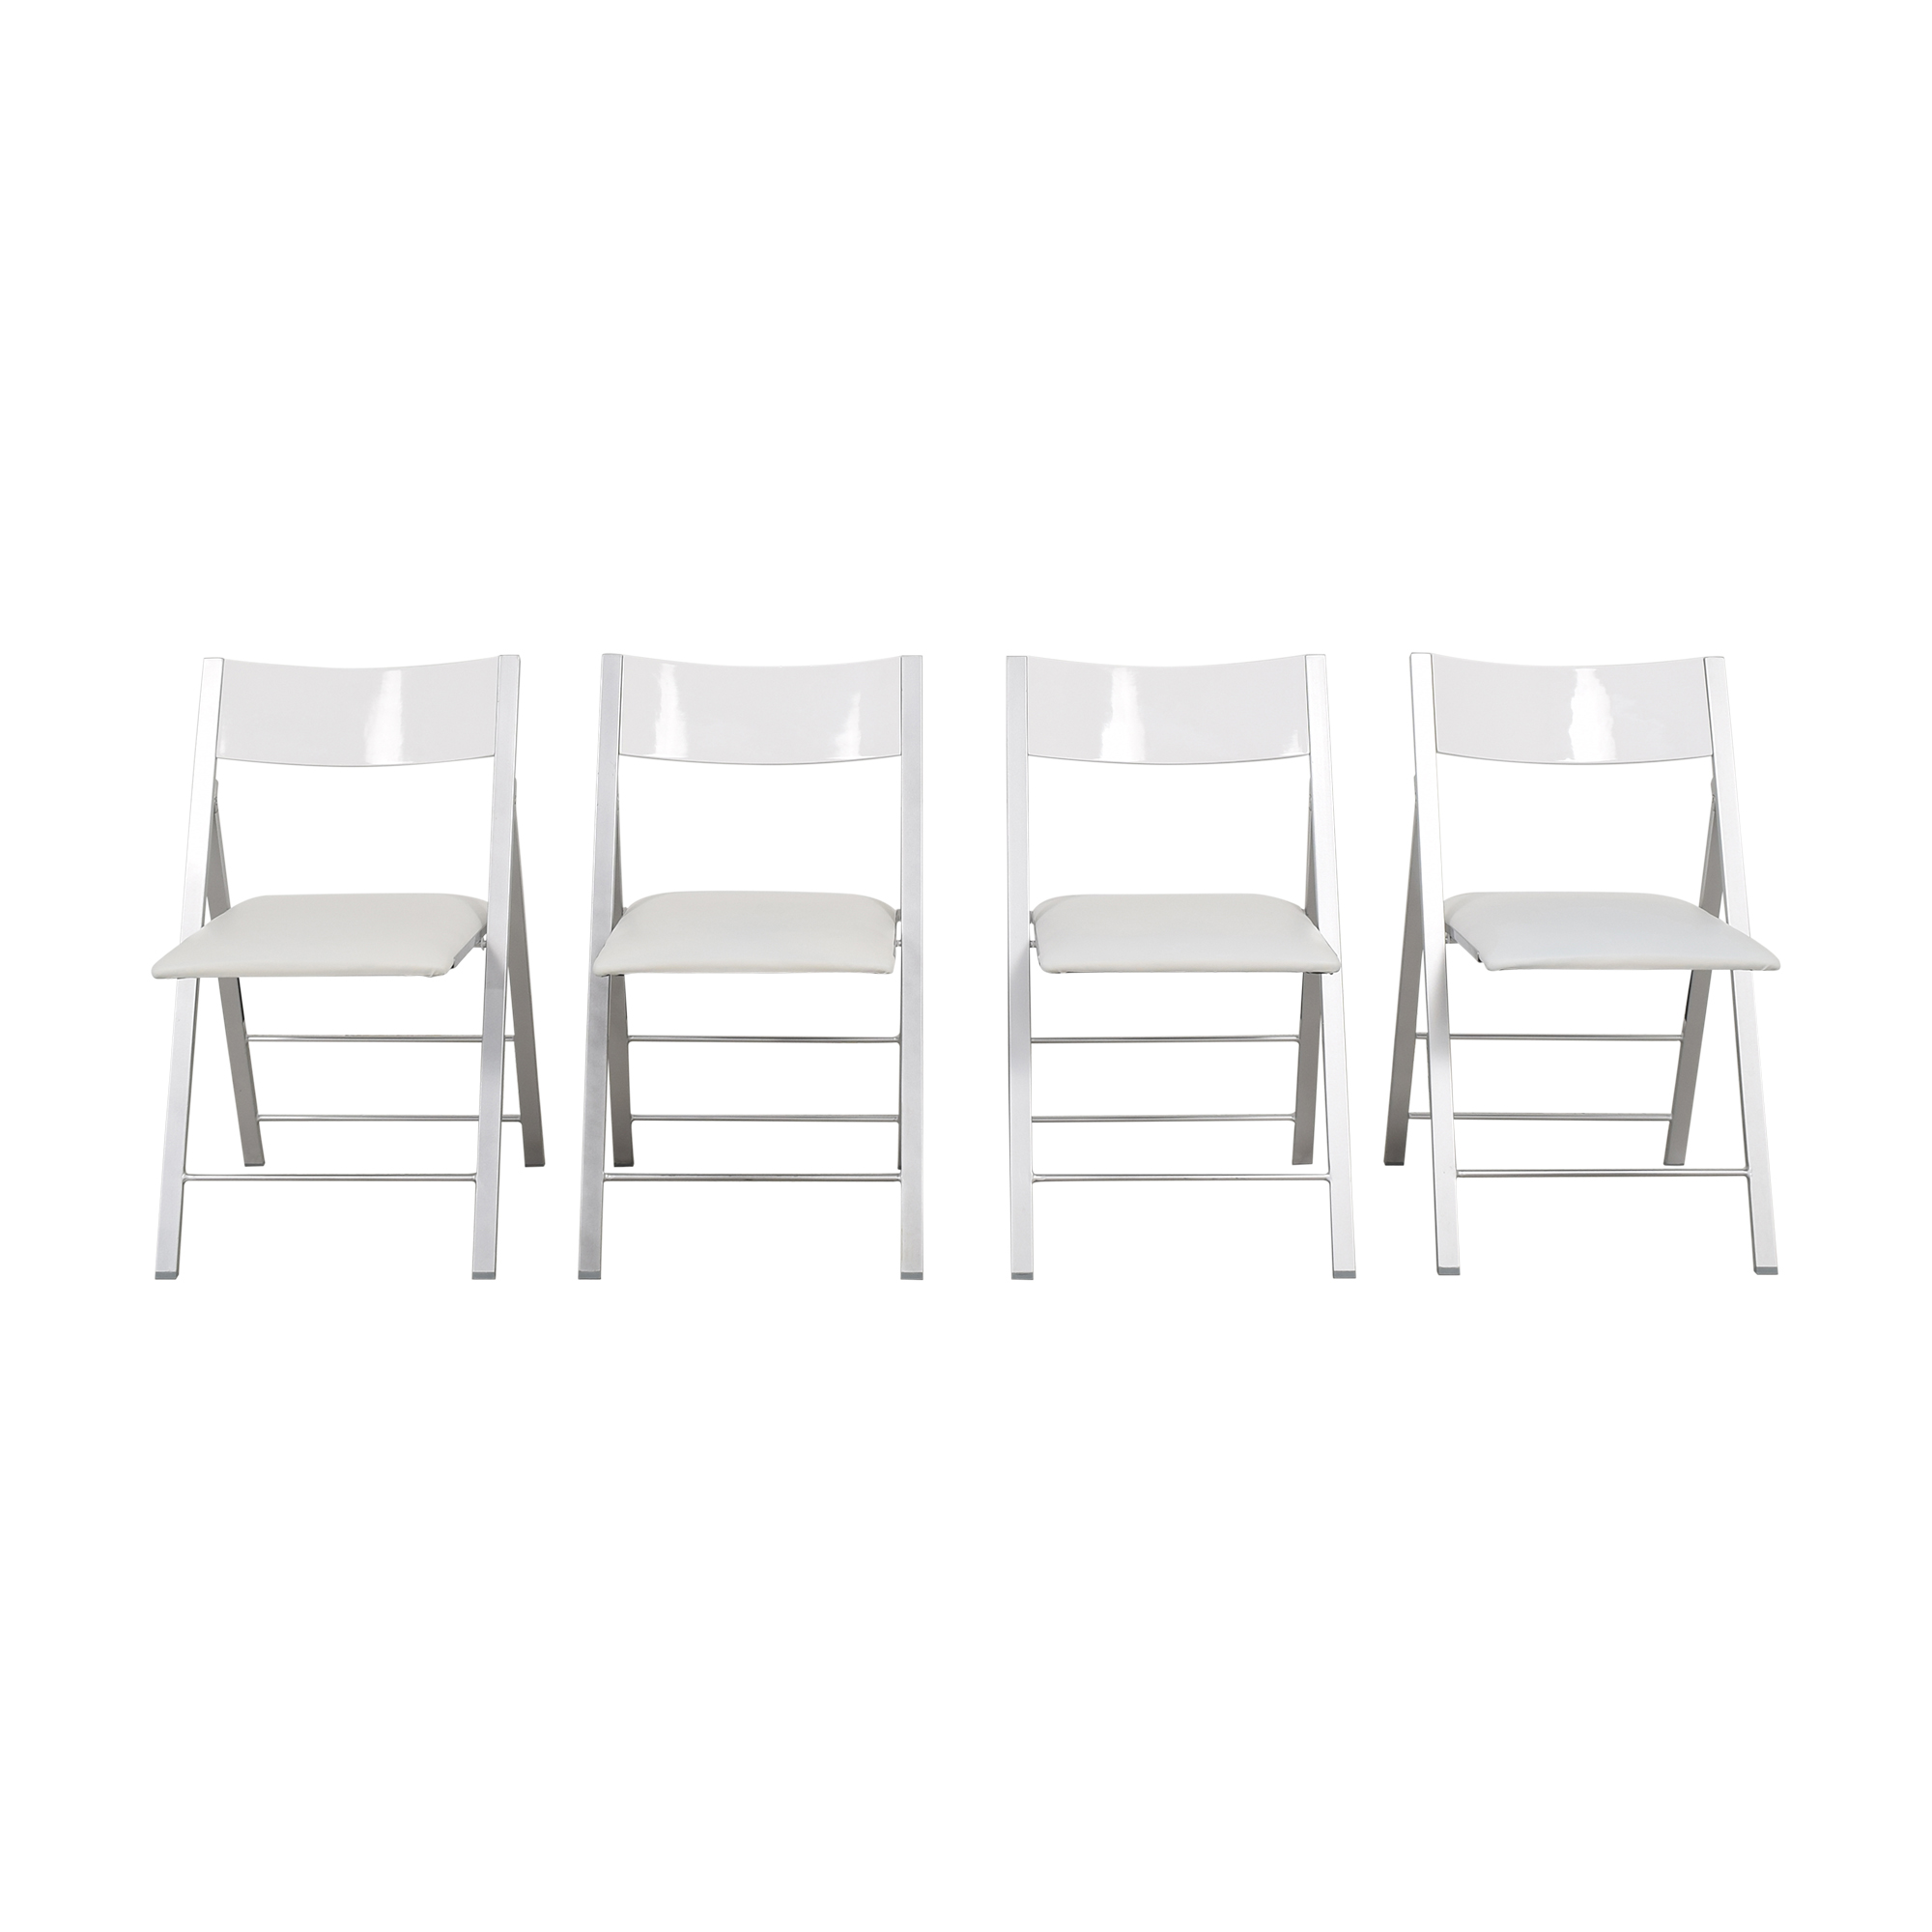 Modern Folding Dining Chairs / Dining Chairs